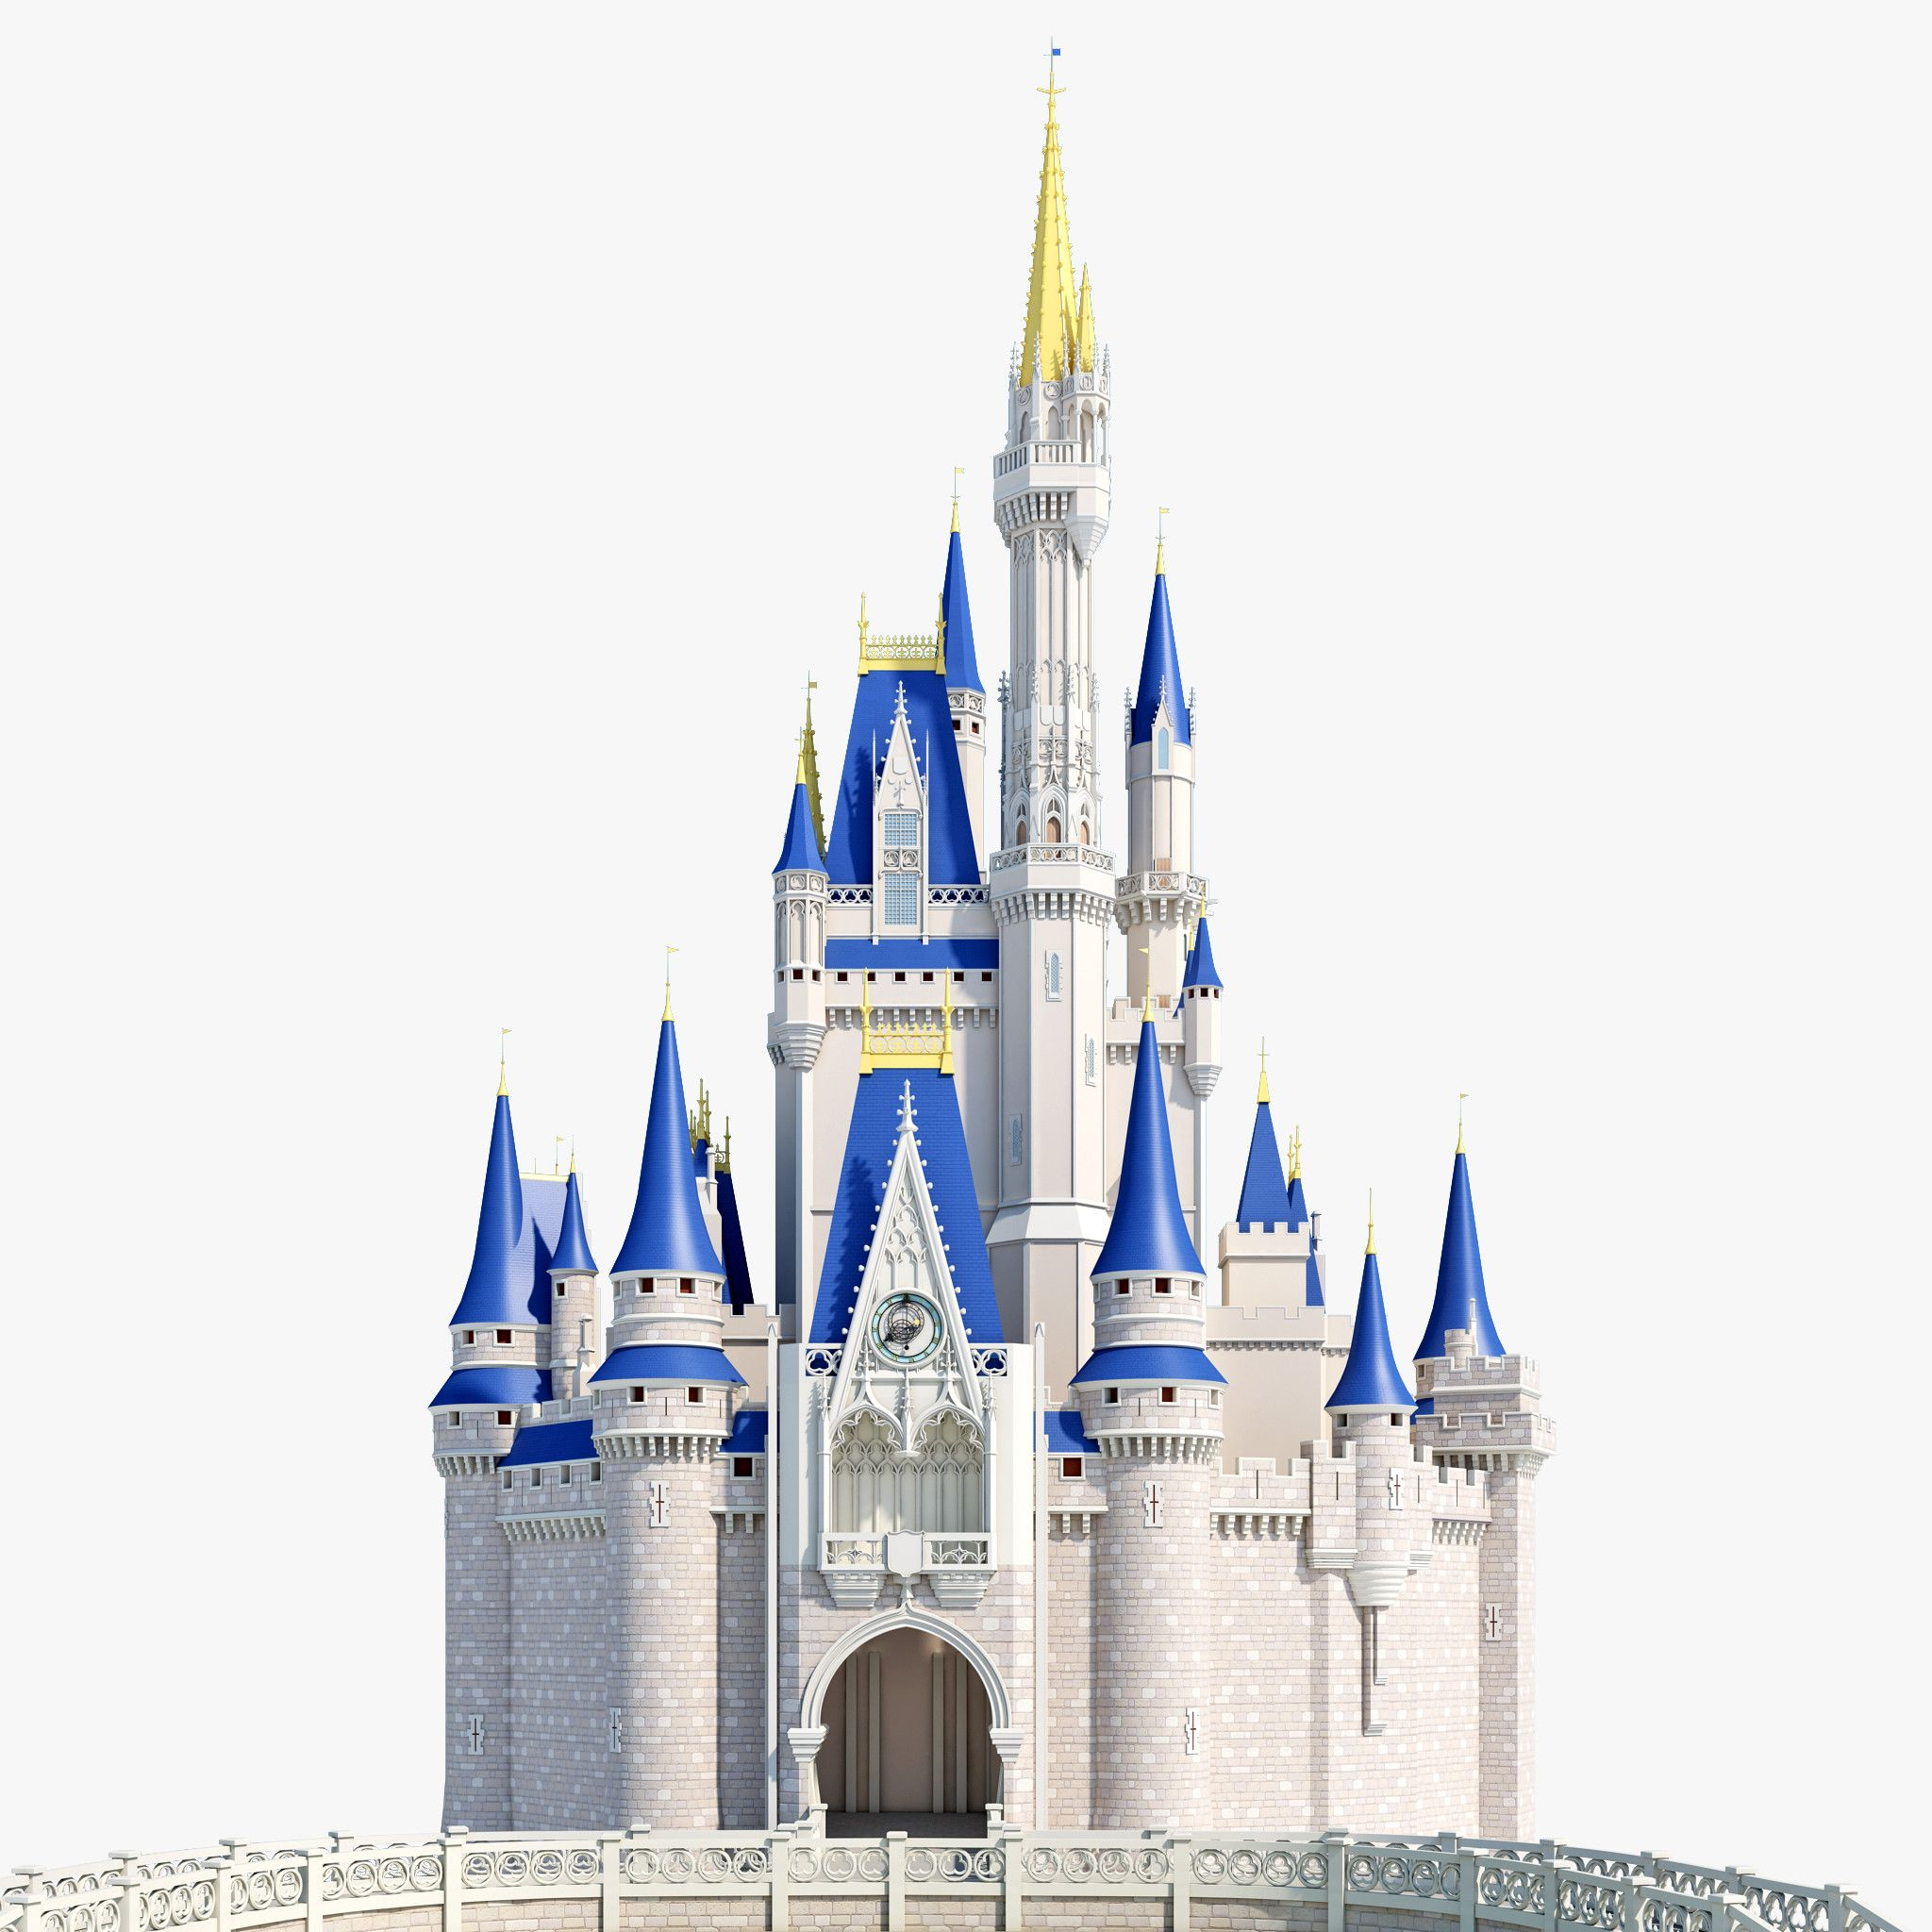 d castle model. Palace clipart cinderella palace